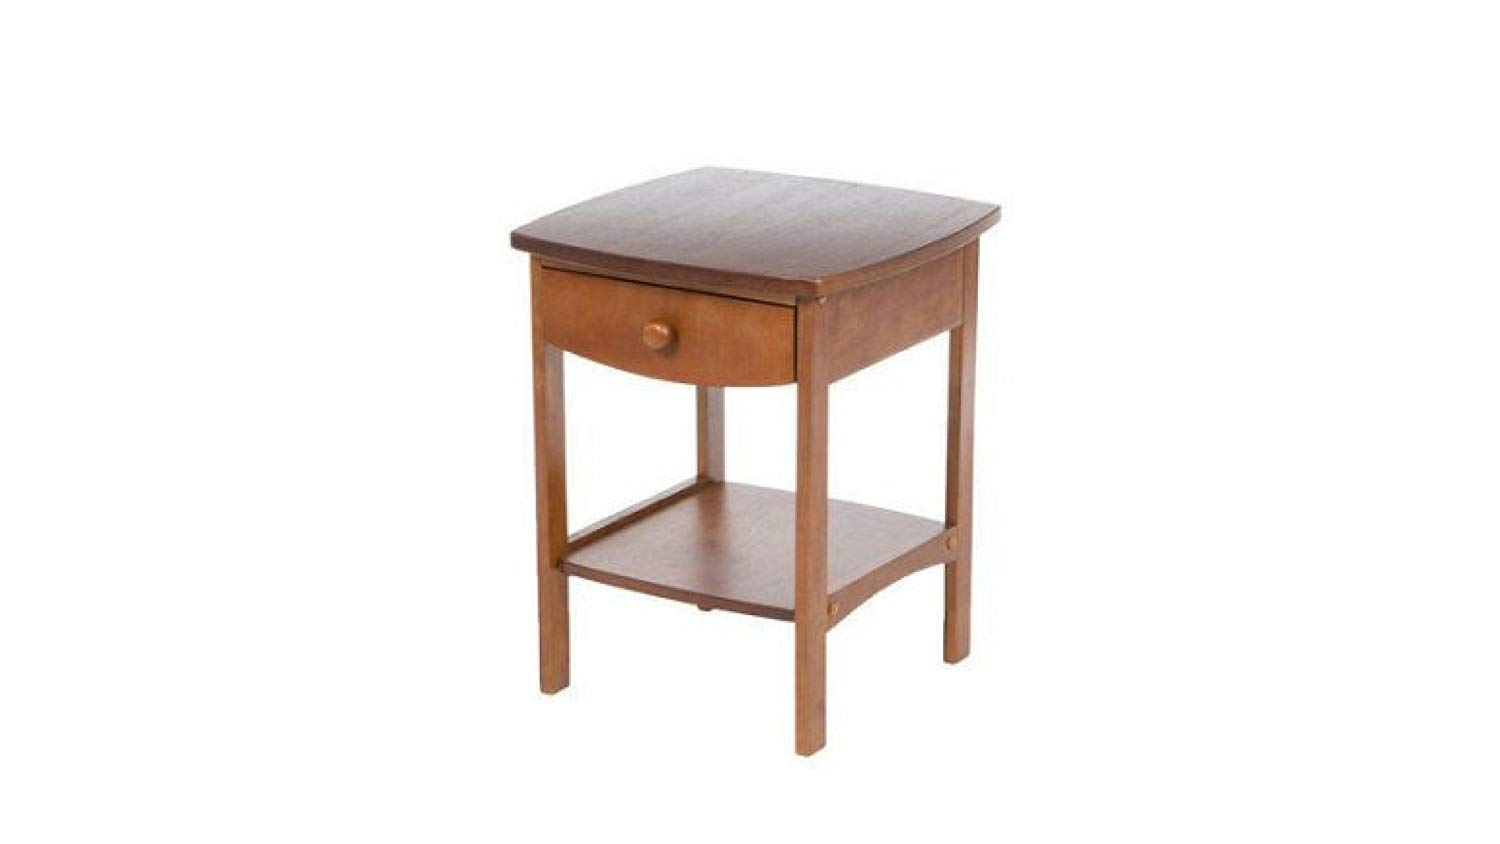 winsome wood curved nightstand end table features eugene accent espresso pull out drawer natural kitchen dining decorative wine rack small extra long narrow sofa west elm loveseat